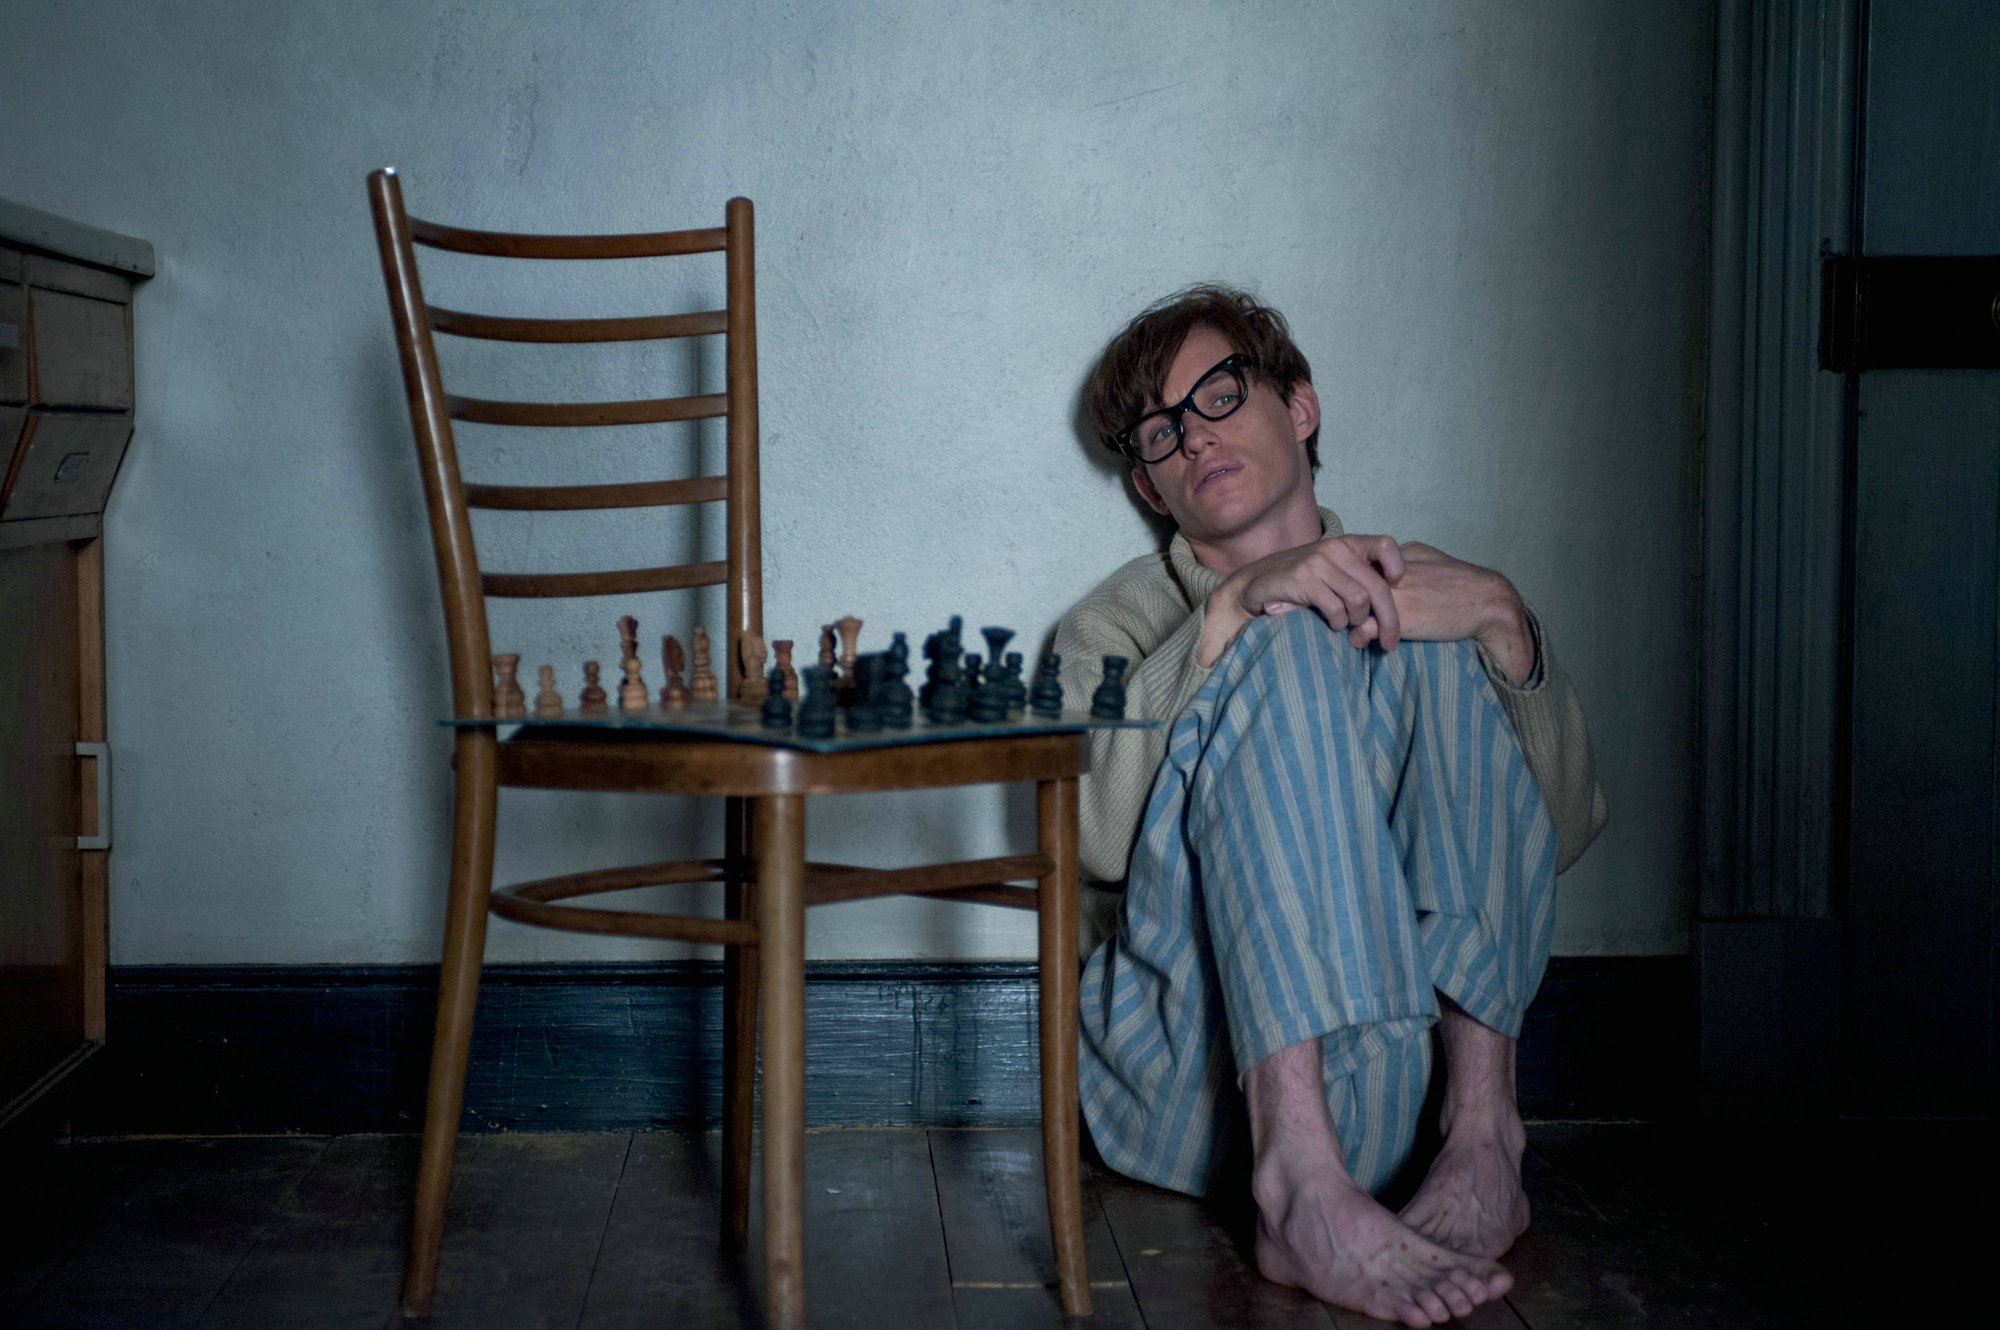 The Theory of Everything My Views on Loneliness